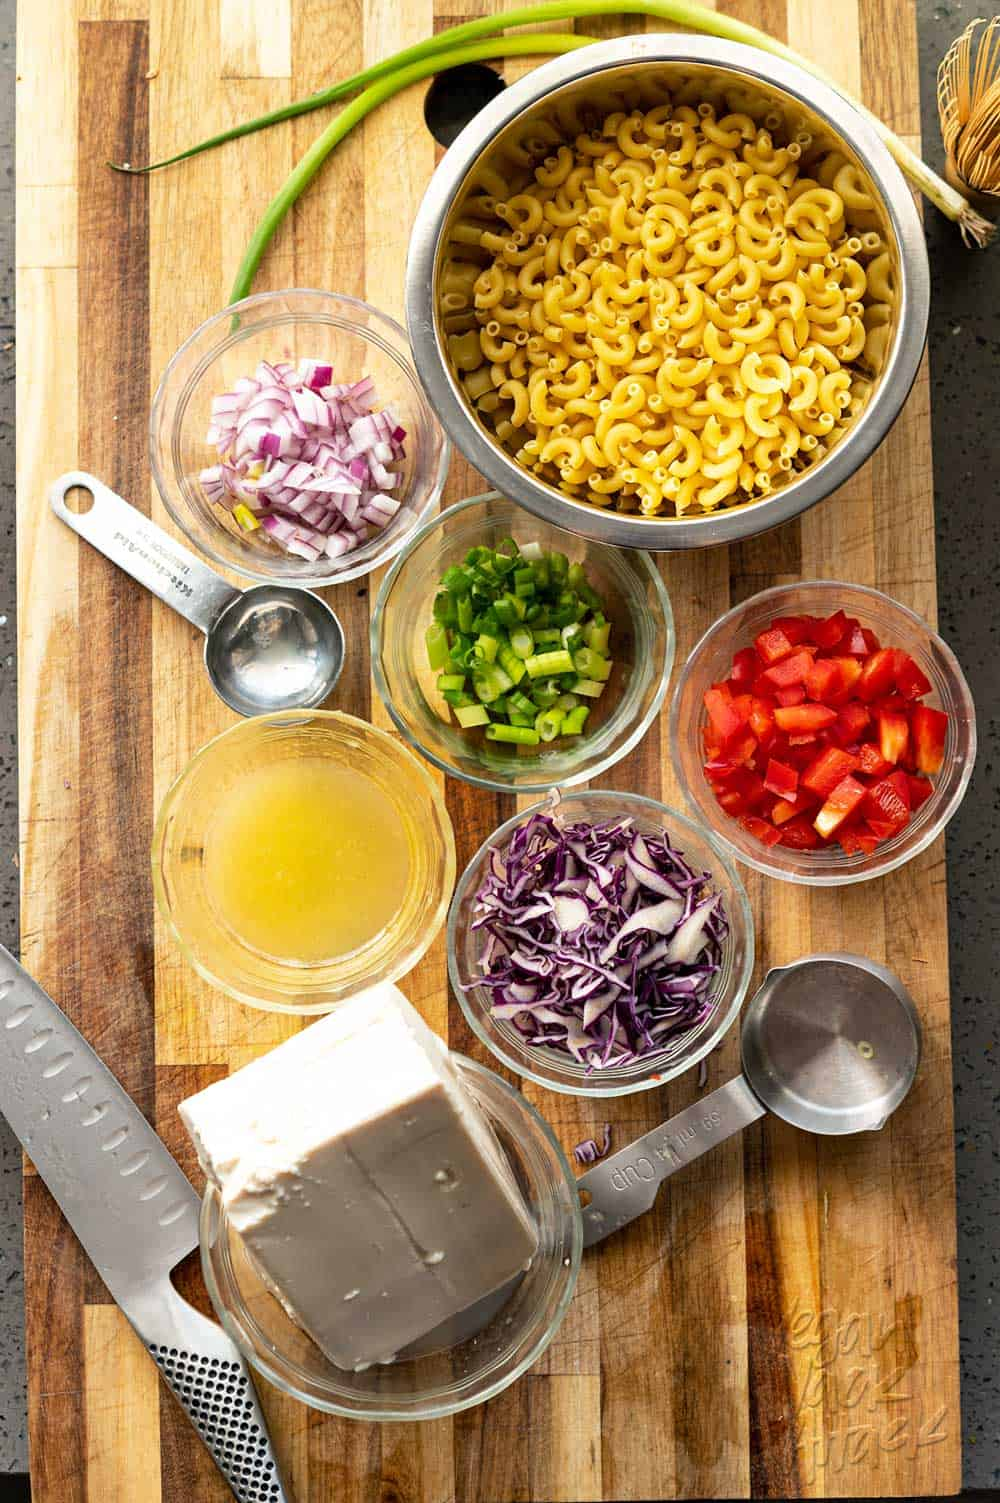 Small bowls with pasta, onions, cabbage, lemon juice and more on a cutting board